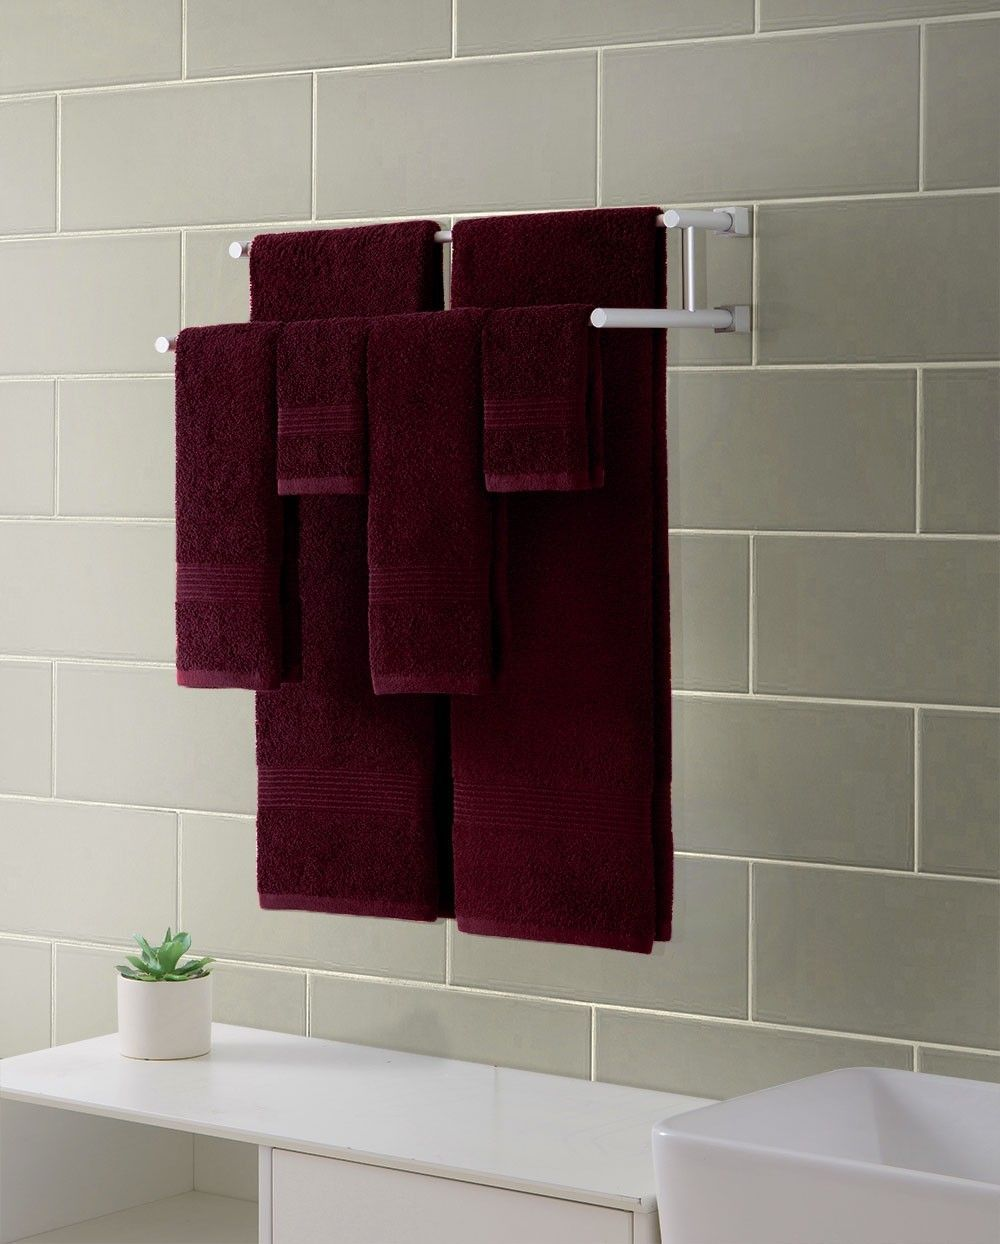 Vcny Ribbed Luxury 6 Piece Bath Towel Set Downtown Collection 100 Cotton Burgundy